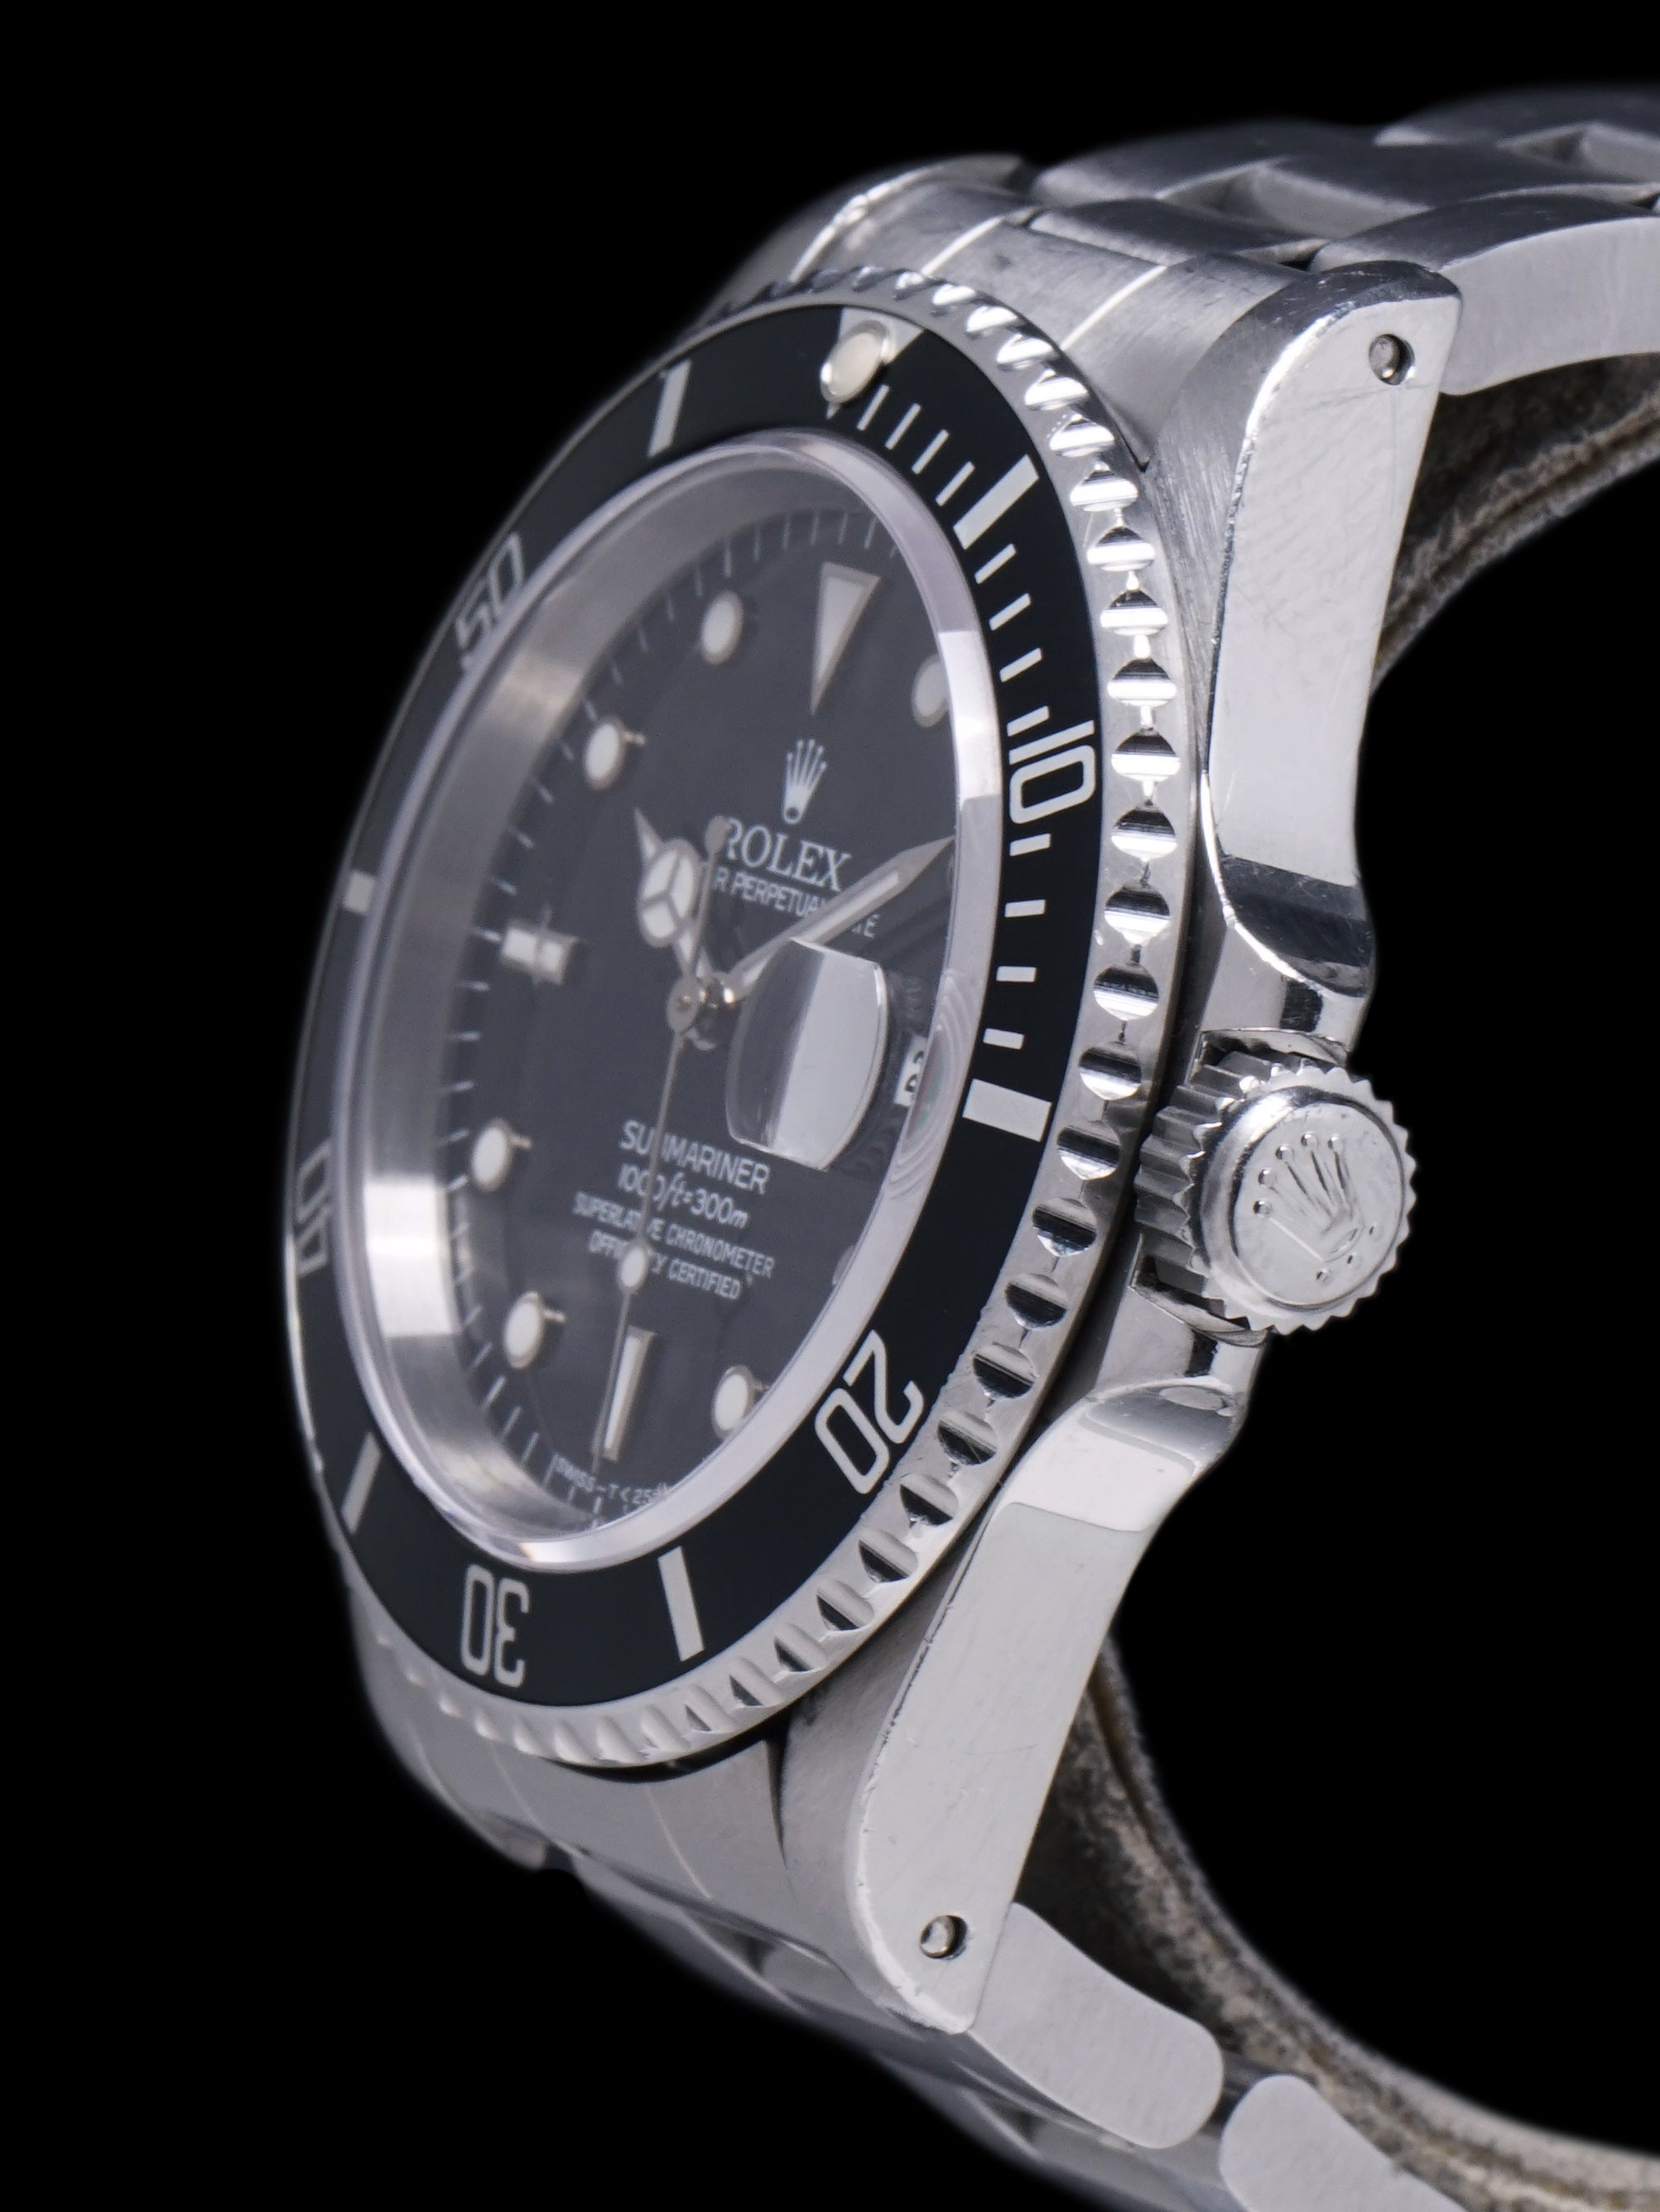 *Unpolished* 1994 Rolex Submariner (Ref. 16610) W/ Box and Papers